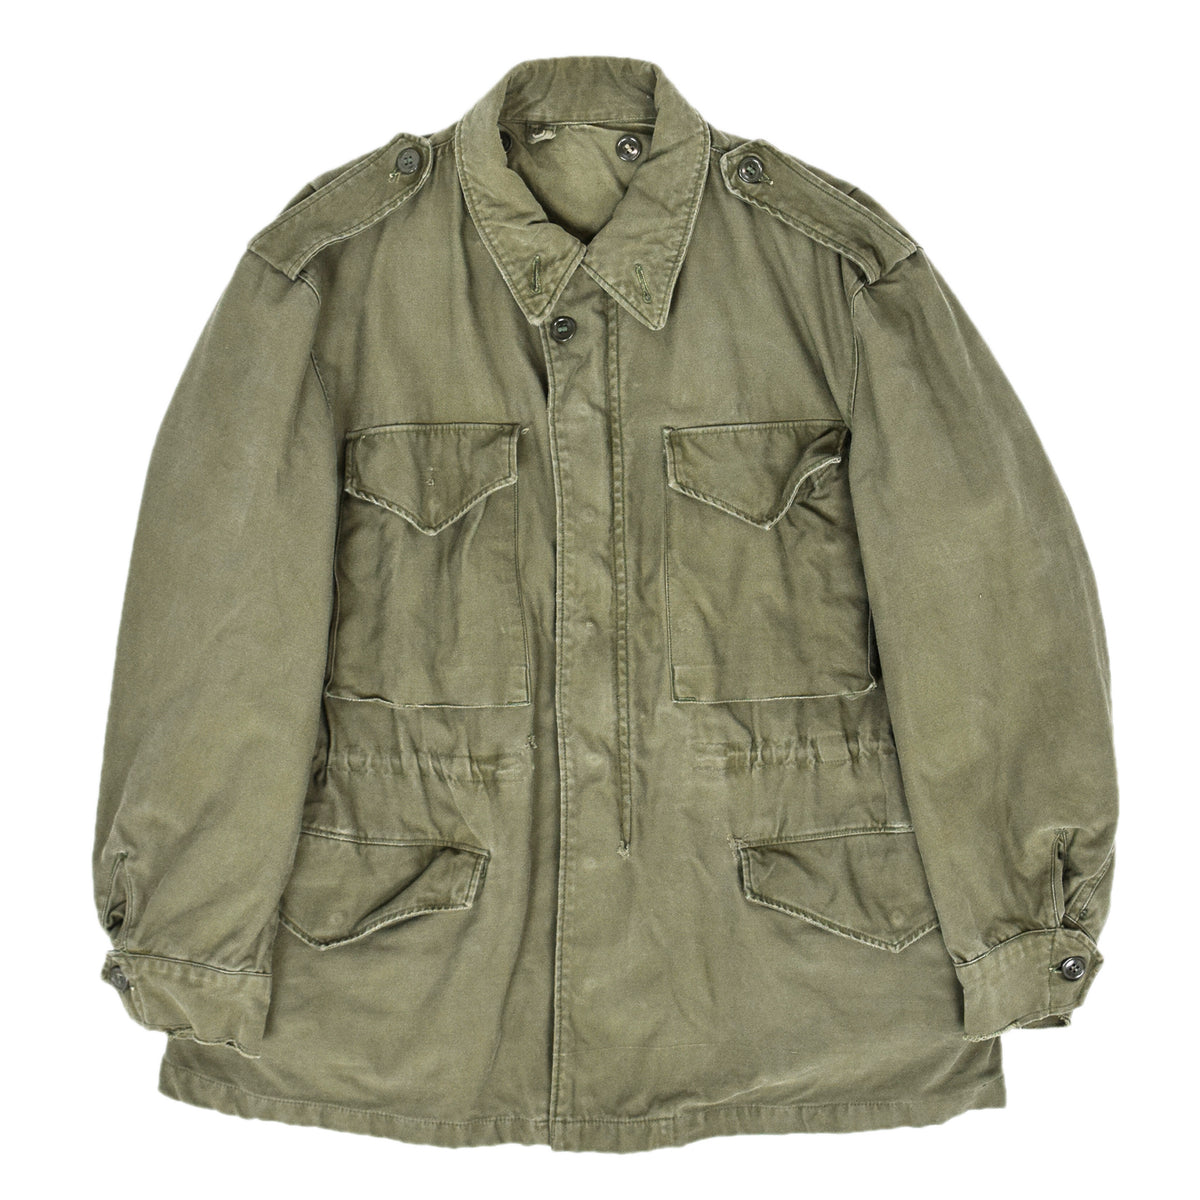 Vintage 50s M-1951 Korean War US Army Field Jacket OG-107 Olive Green M front